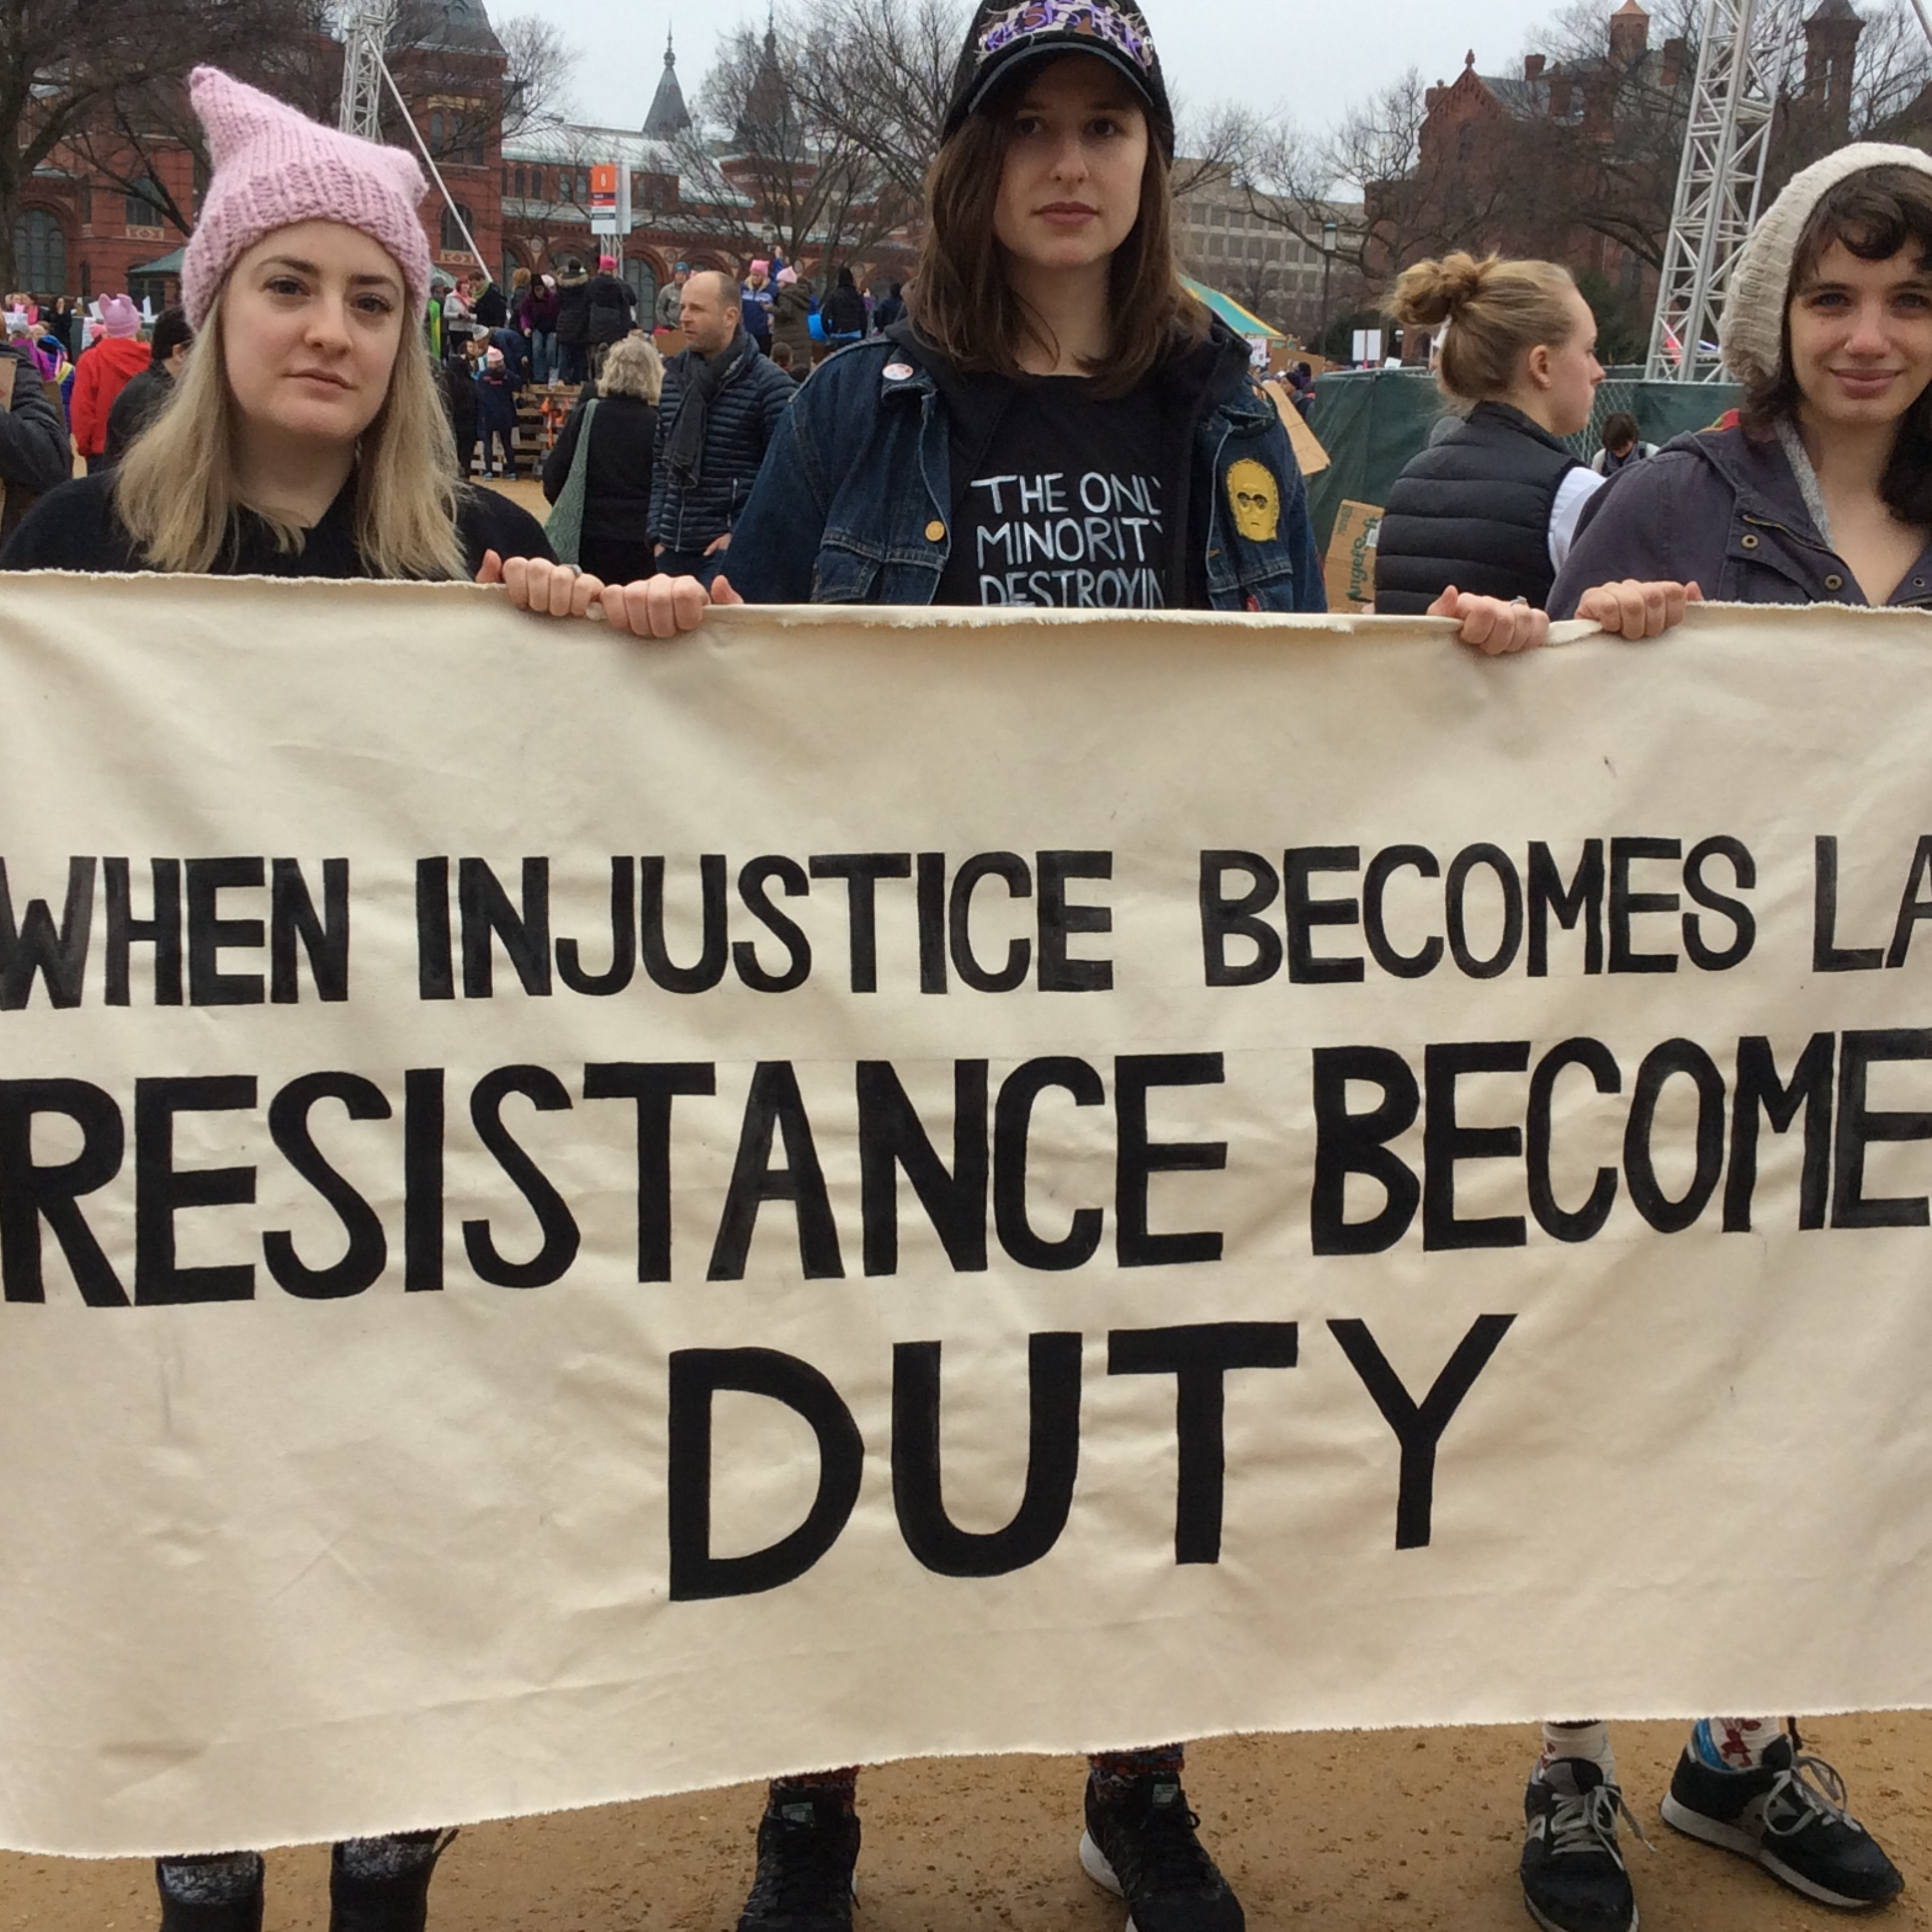 """Washington DC January 21, 2017, """"When Justice Becomes Law Resistance Becomes Duty."""""""